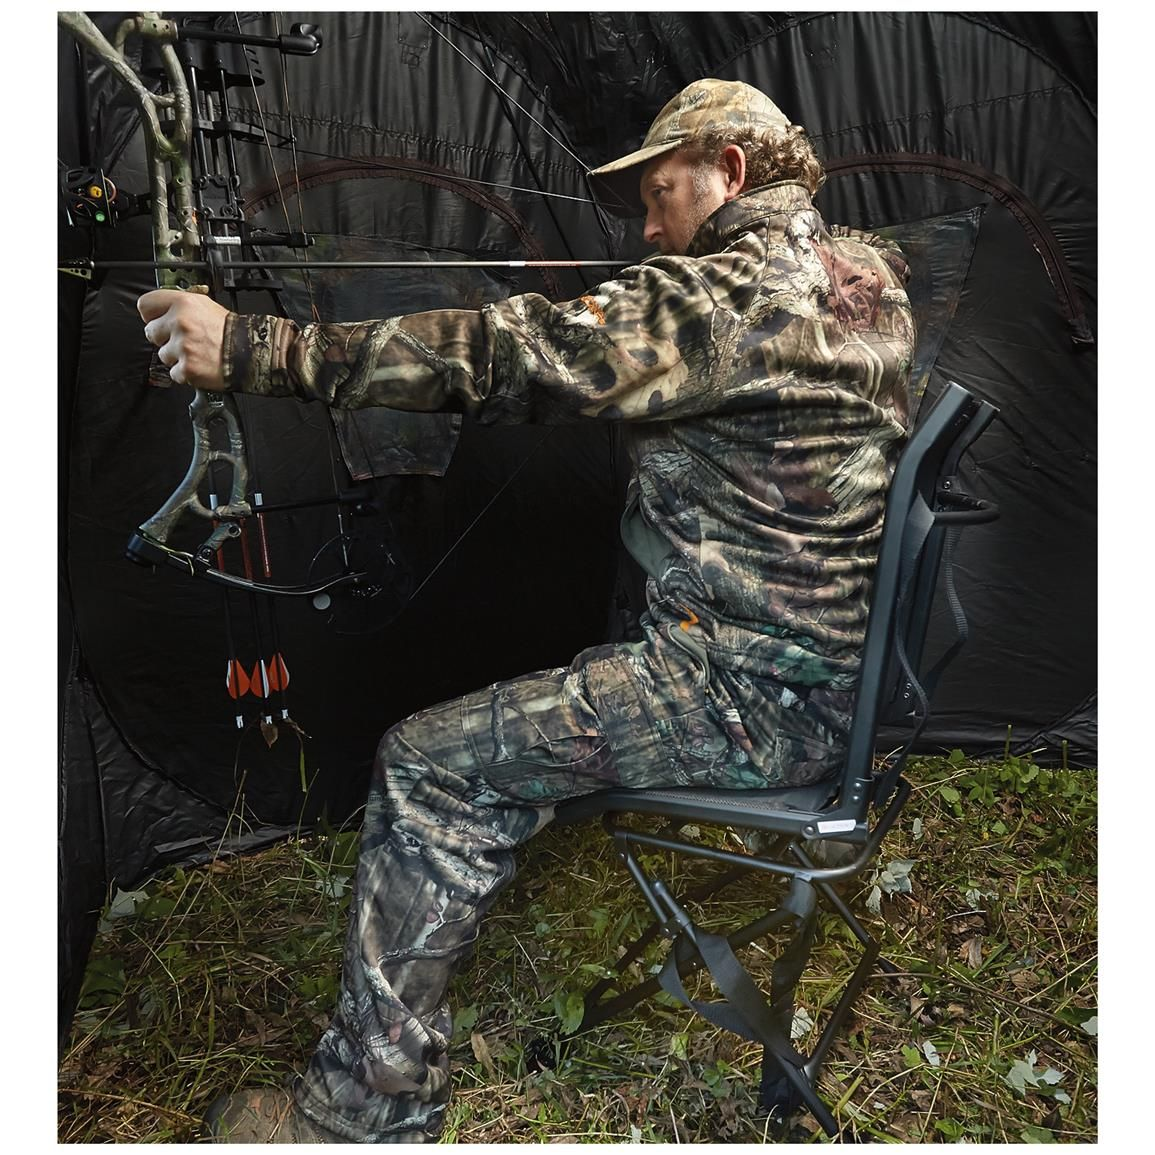 attract ground use hunting ideas very to just trick lid stands best cool and the homemade deer remove blinds nail on bow